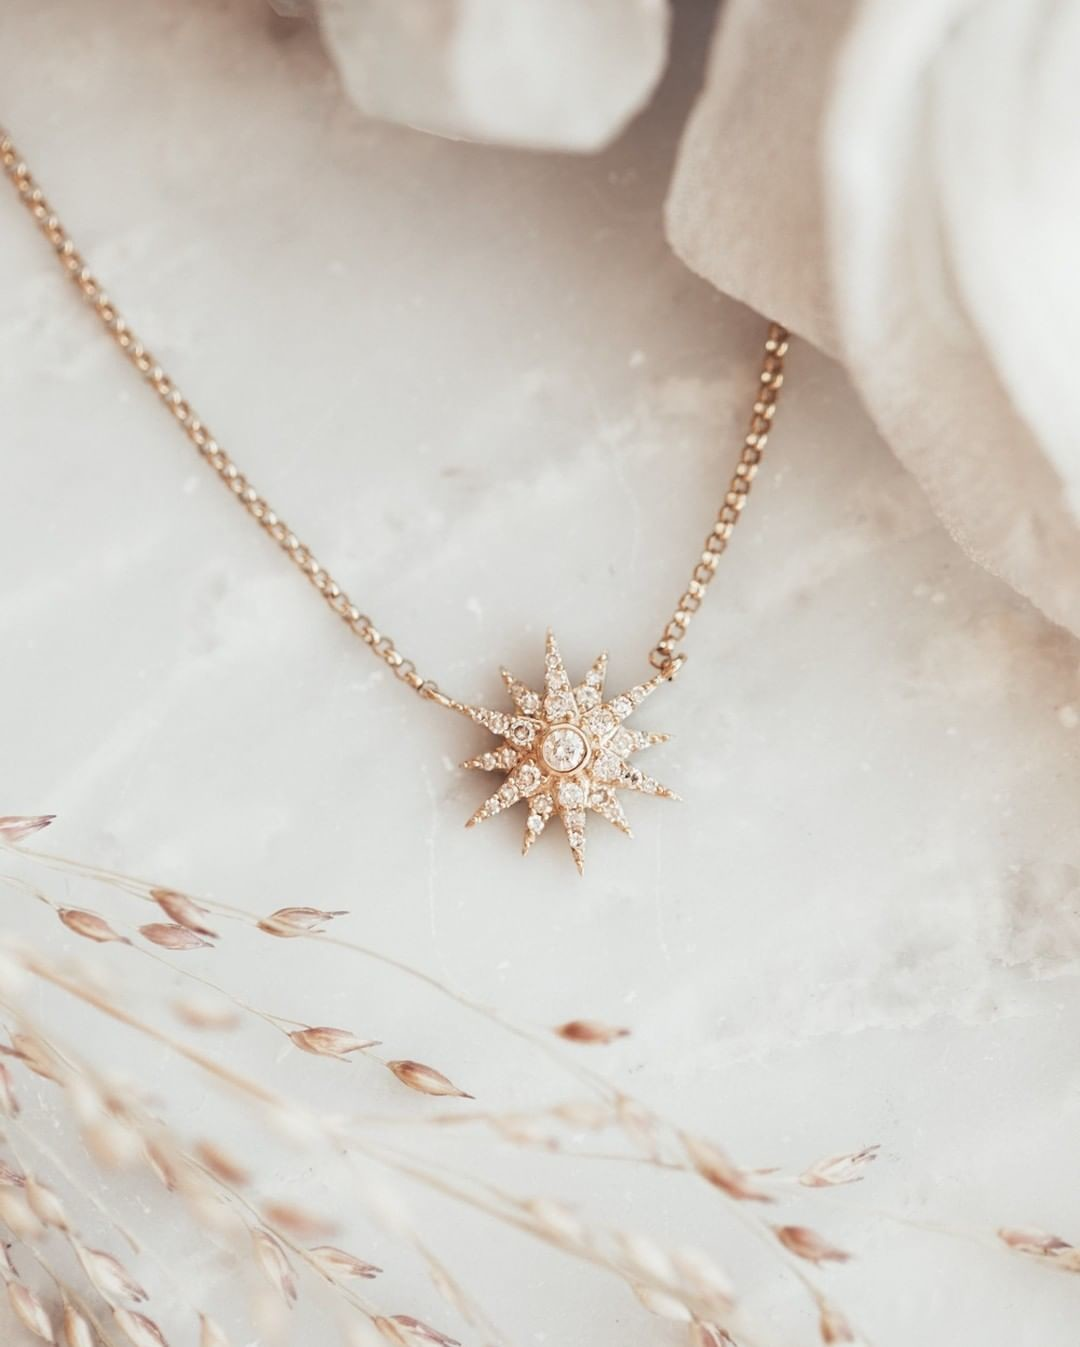 We have so many dainty pave diamond necklaces in store & online now! Perfect to wear every single day.